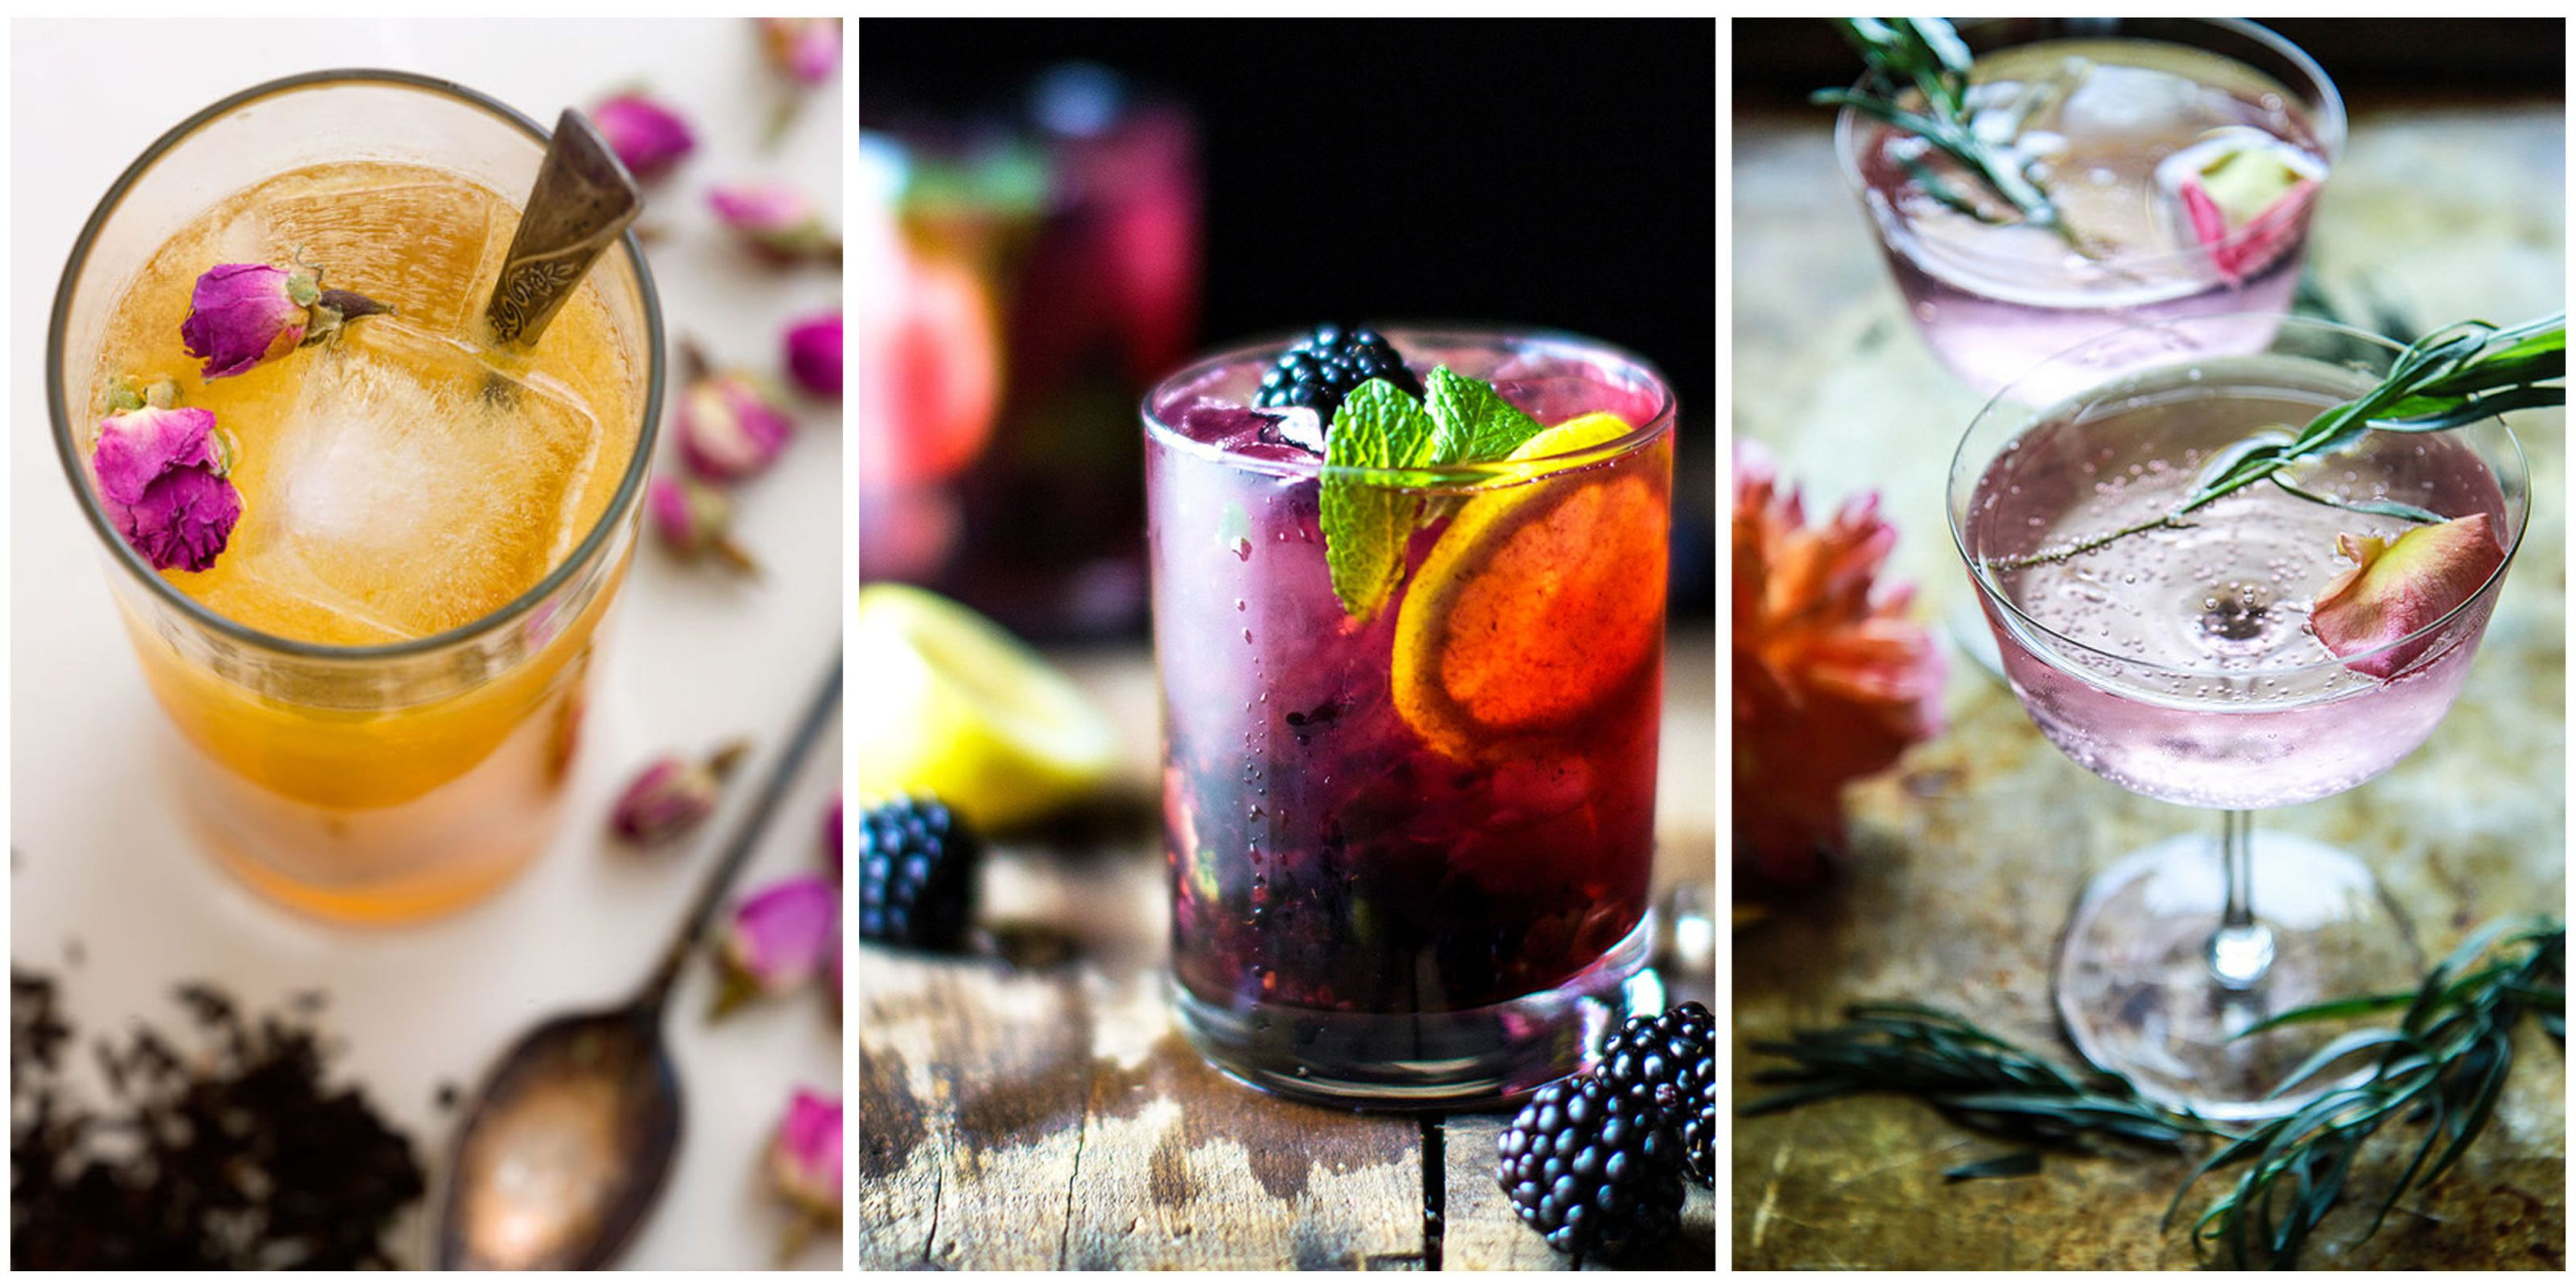 10 Delicious Gin Cocktails Refreshing Gin Drink Recipes